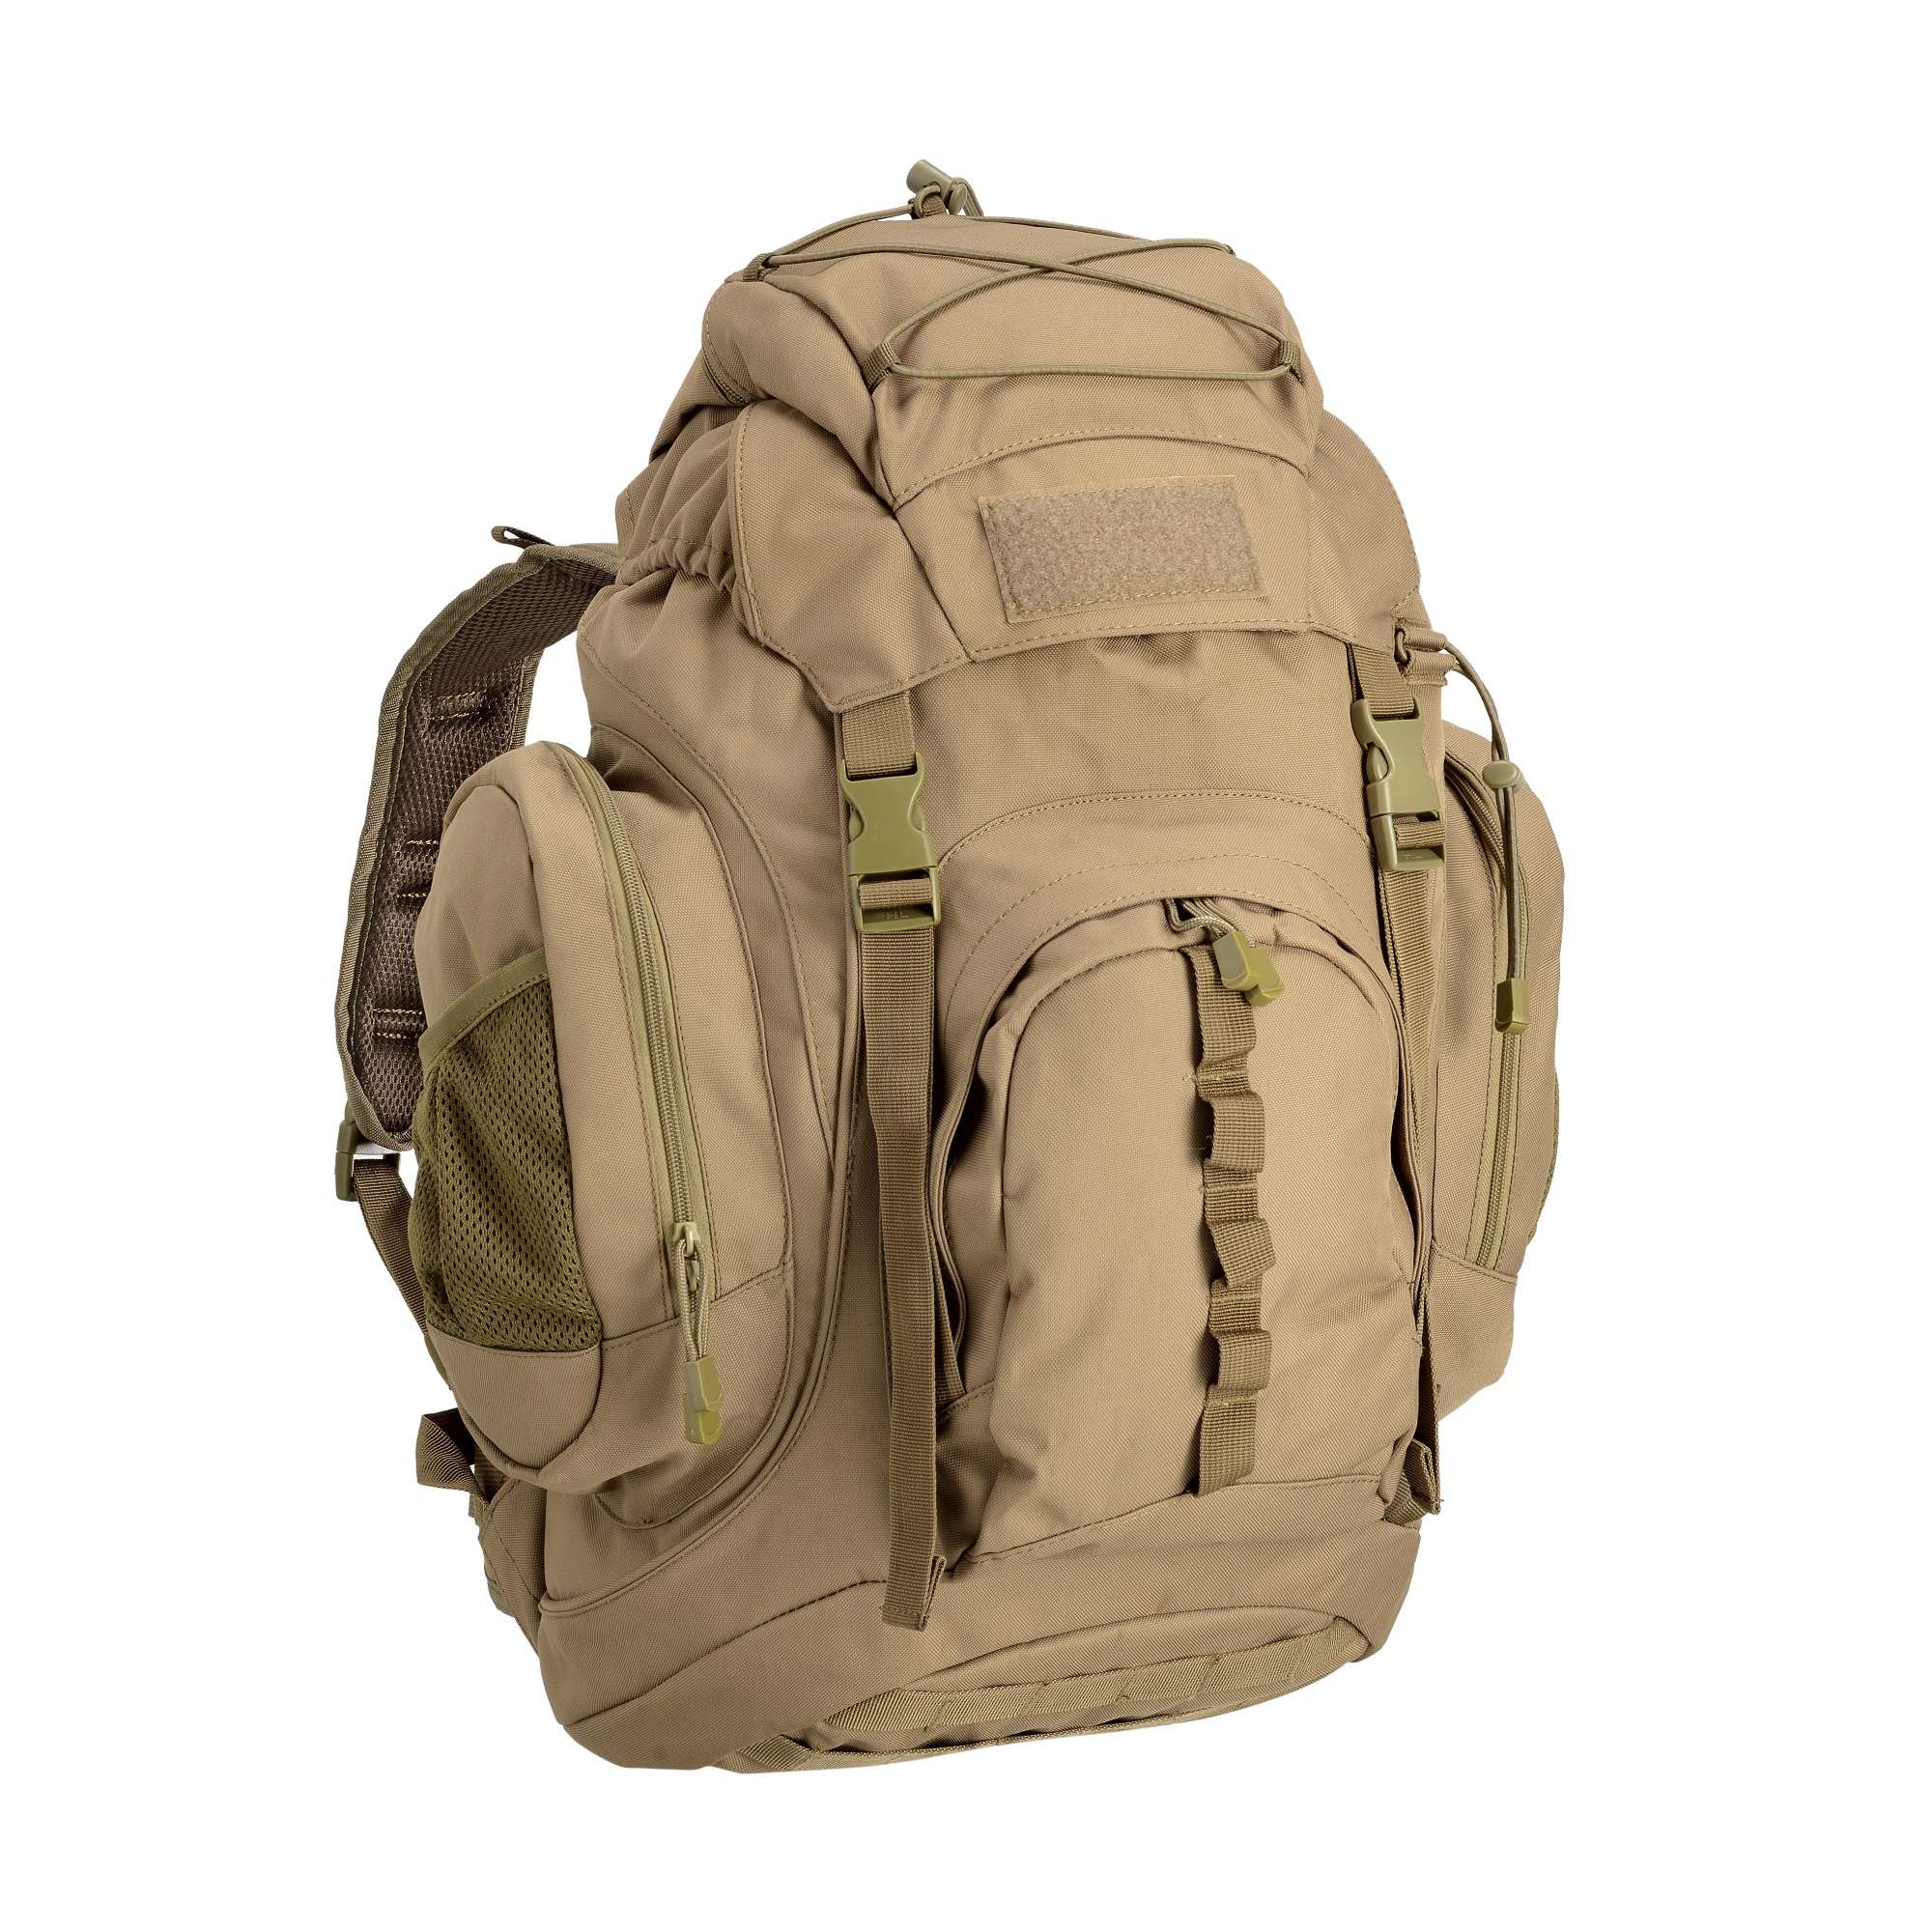 Defcon5 Tactical Assault Backpack